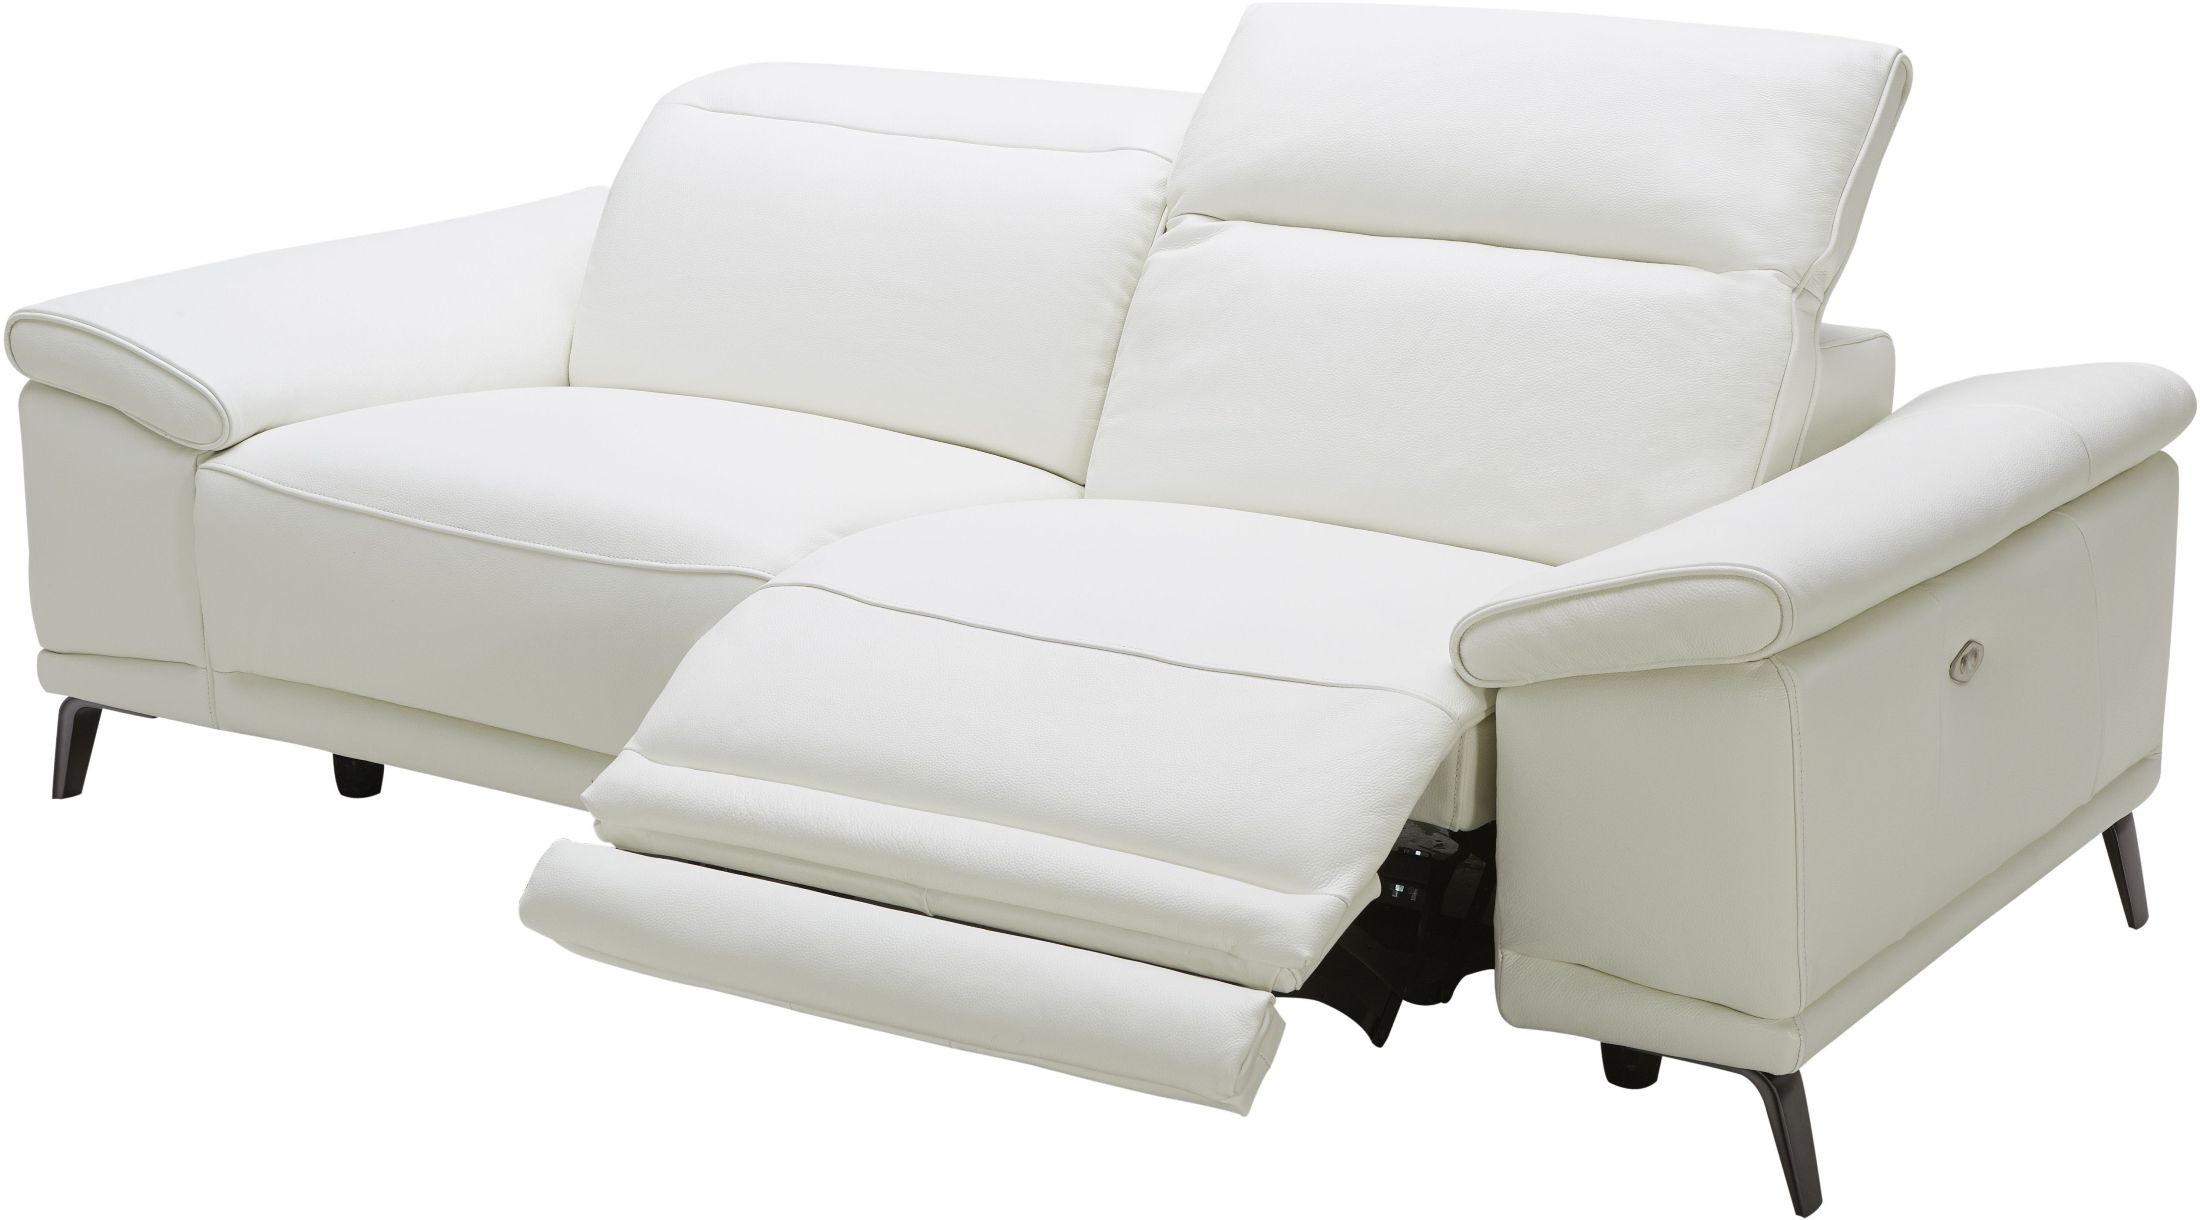 Gaia White Leather Power Reclining Sofa, 18253 S, J&M Throughout Power Reclining Sofas (View 10 of 15)